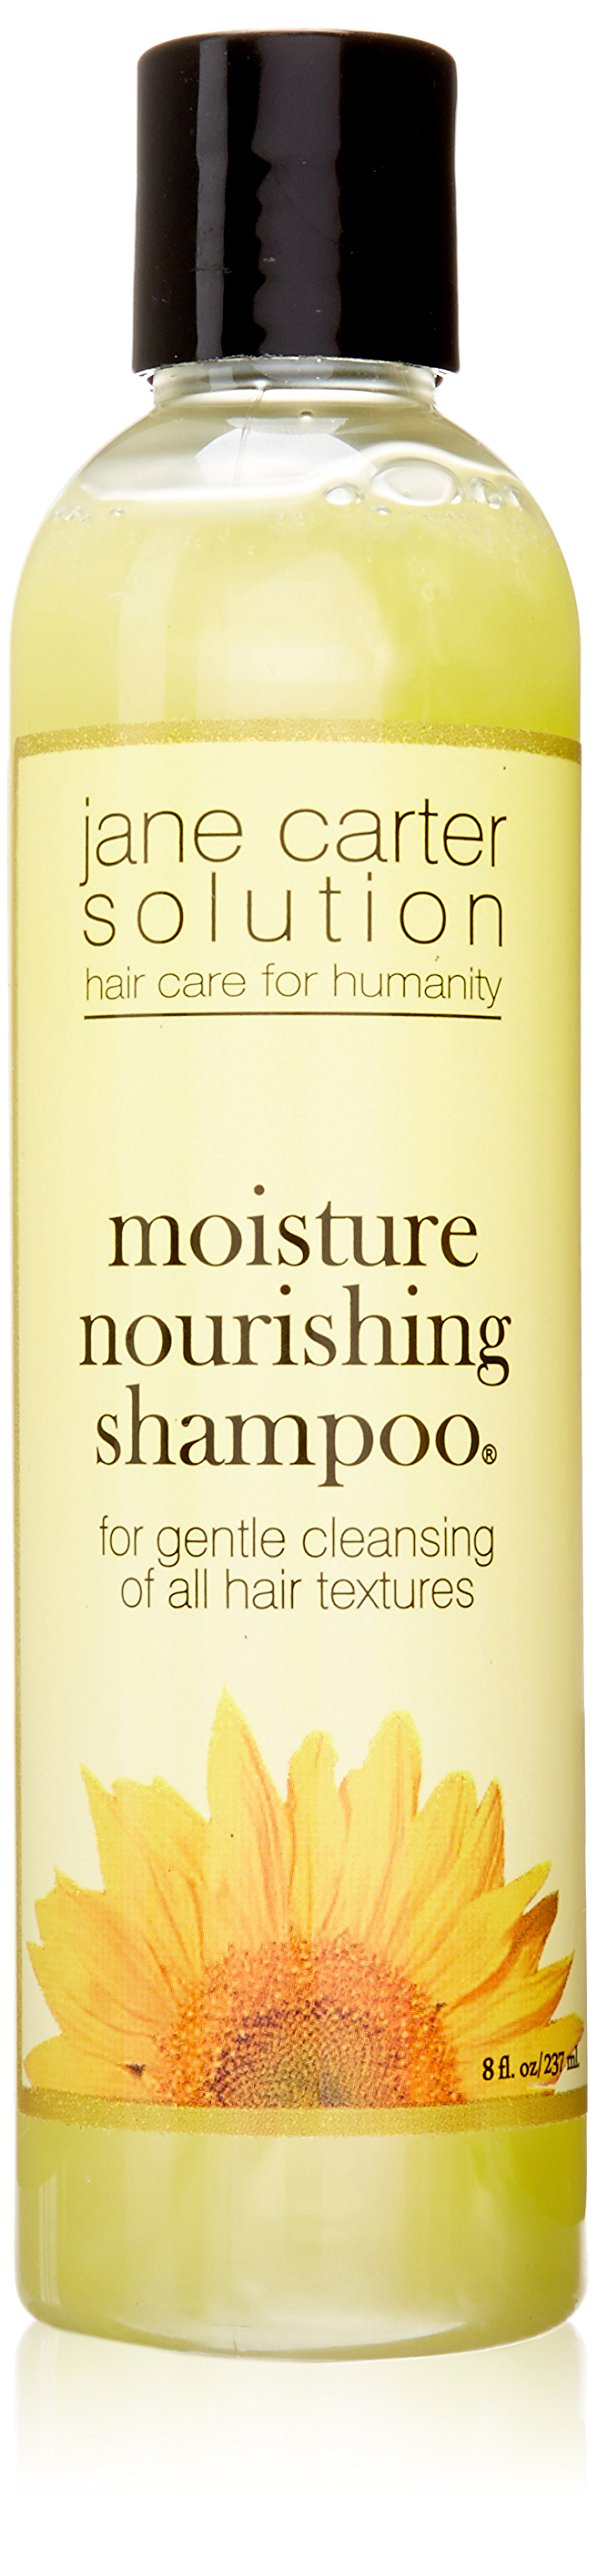 Jane Carter Moisture Nourishing Shampoo, 8 Ounce